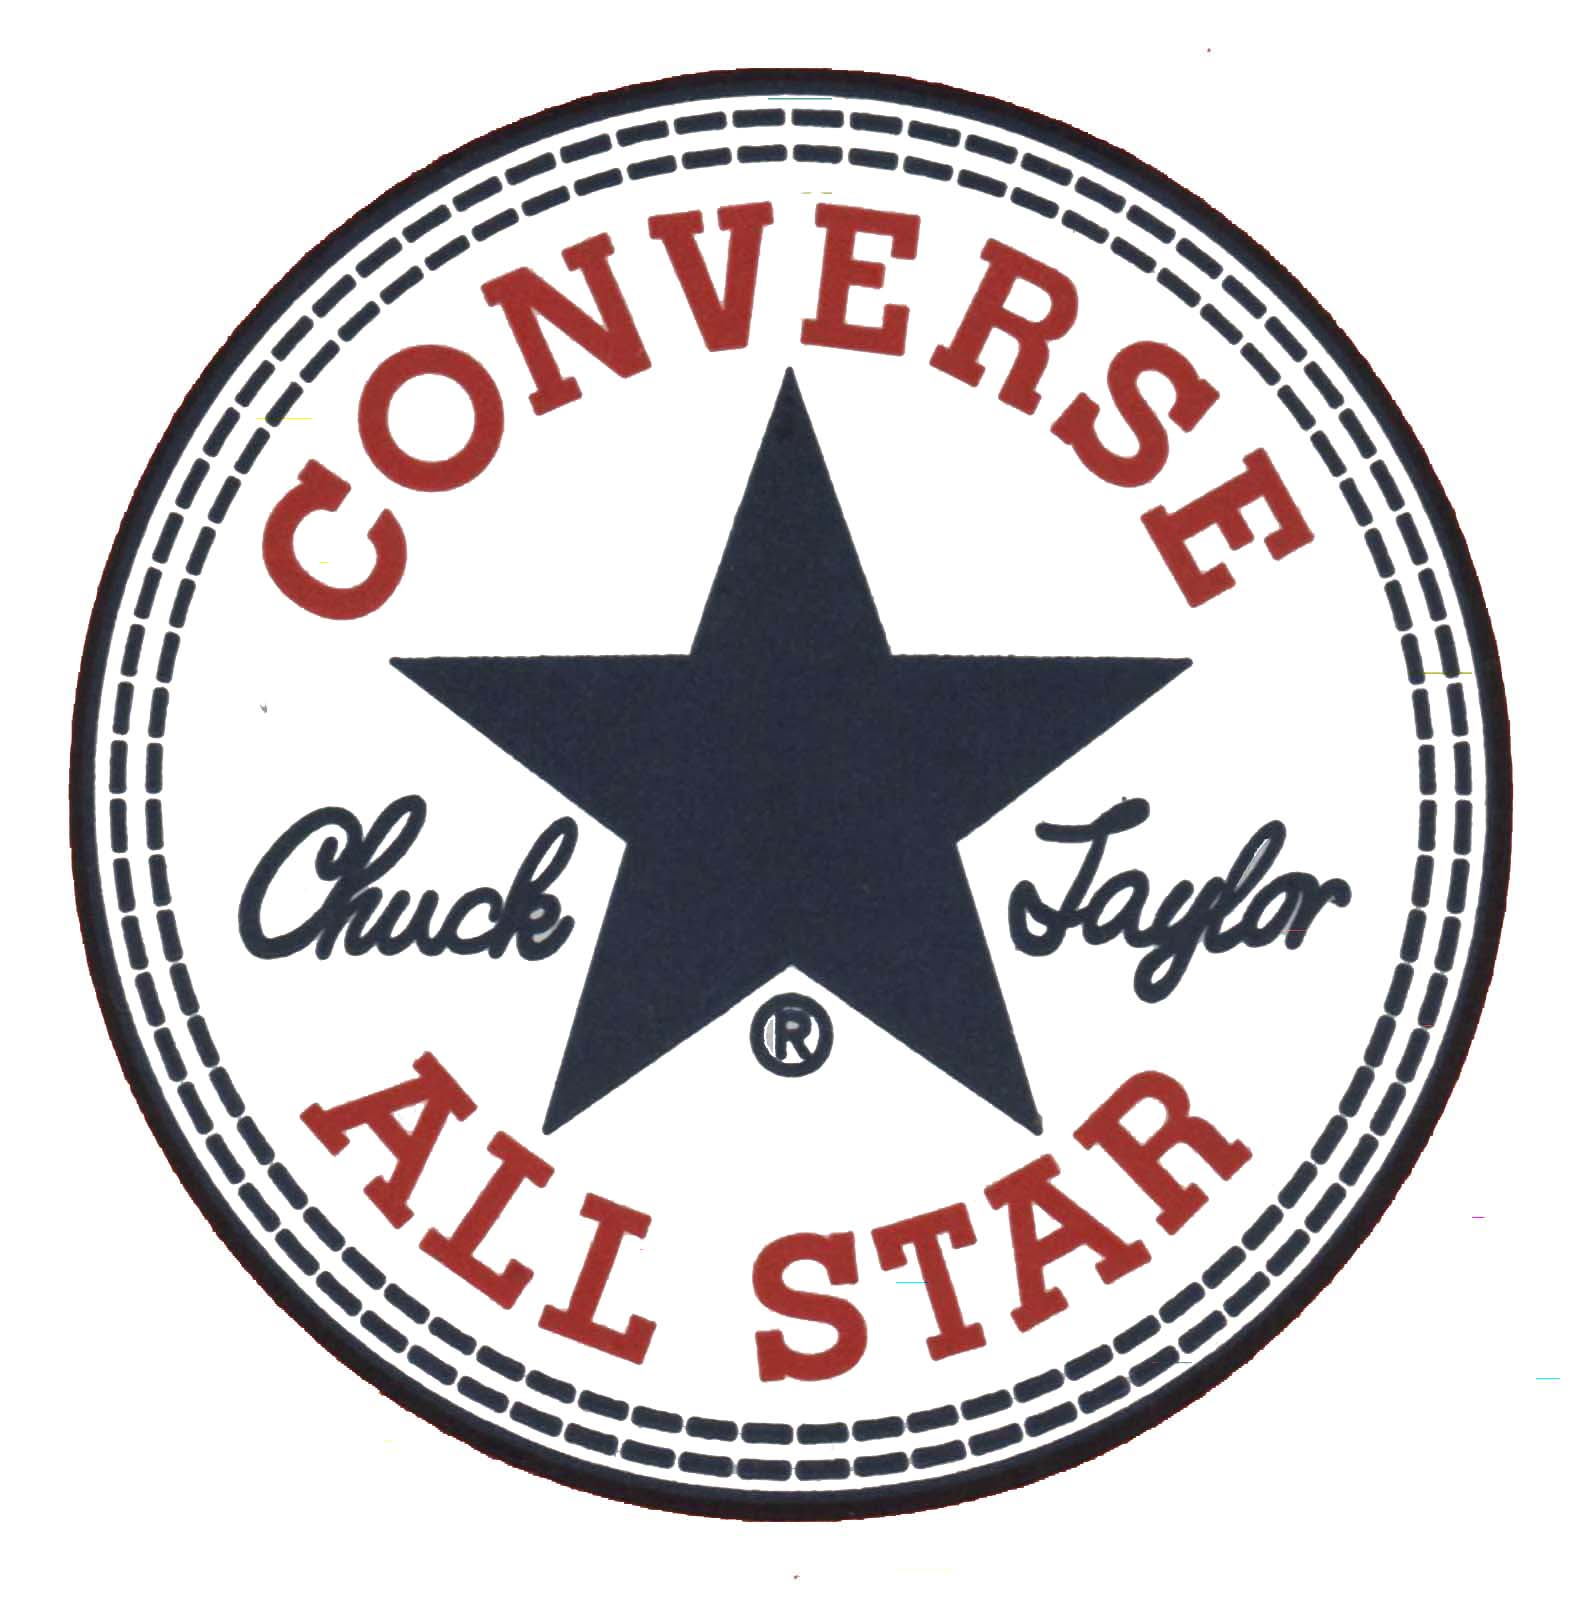 http://www.markething.cz/wp-content/uploads/converse-logo.jpg